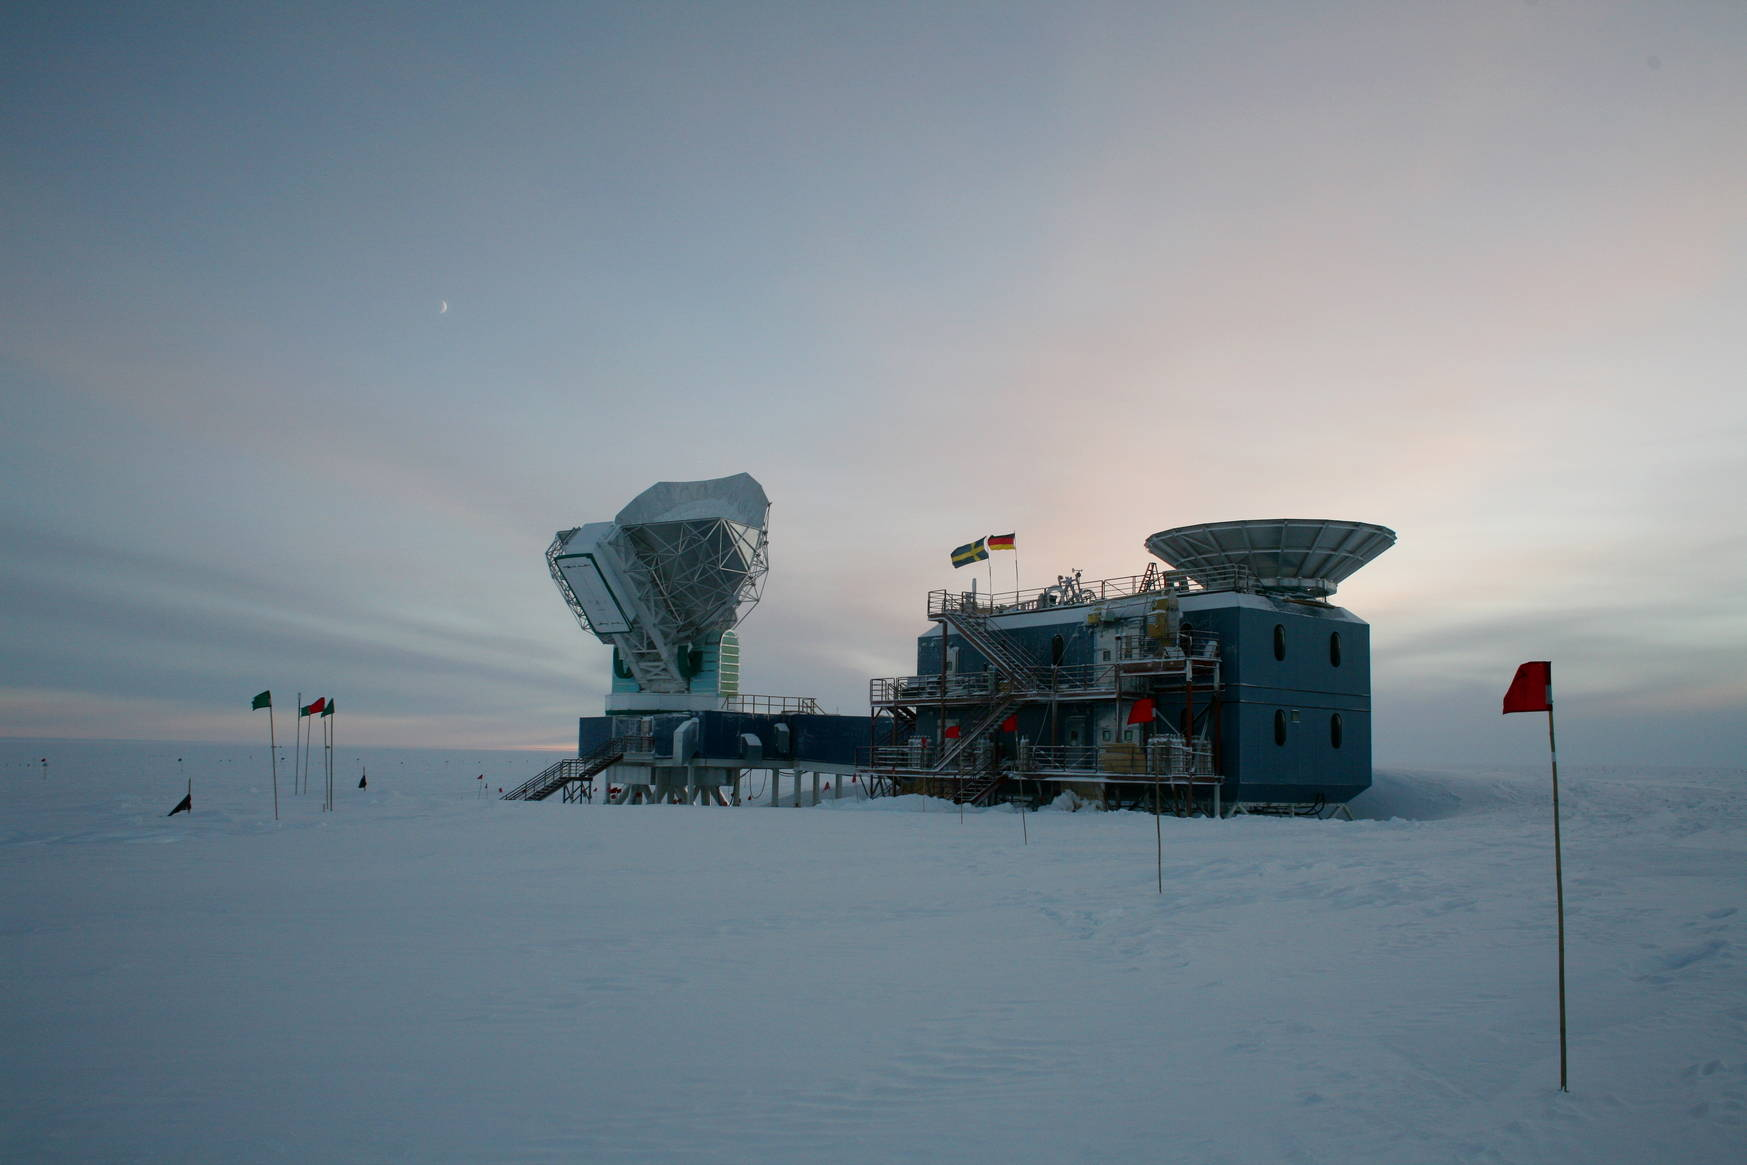 The South Pole Telescope during the sunset (opposite from the sun). Did you notice the moon?